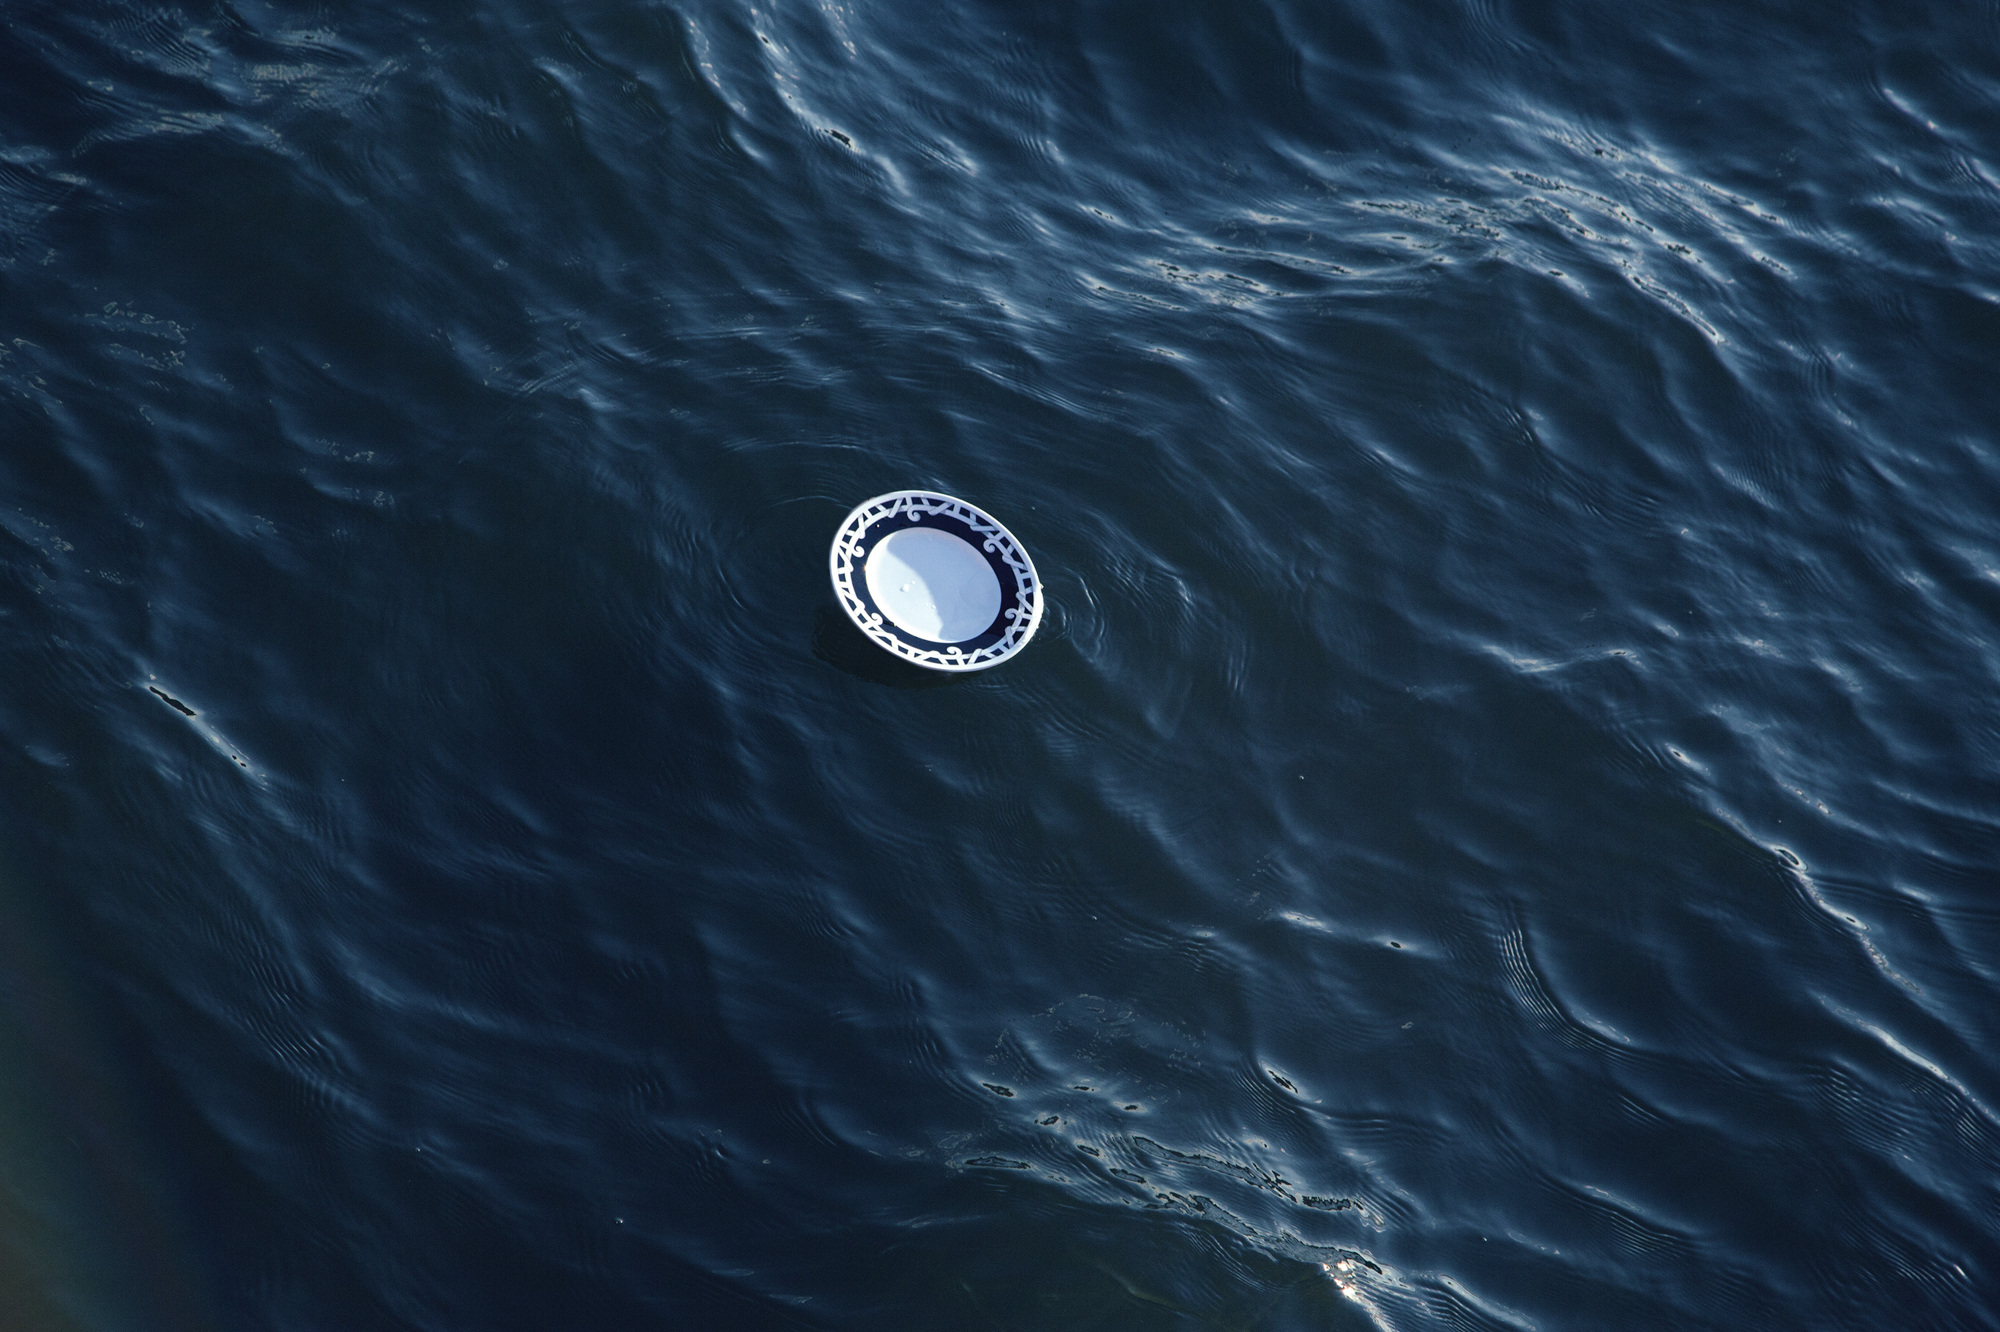 """A dinner plate floats in New York City's East River. """"It said something about just getting swept away and belongings being flooded,"""" says Wist. But it also implied """"us persevering... and eating dinner despite that."""""""